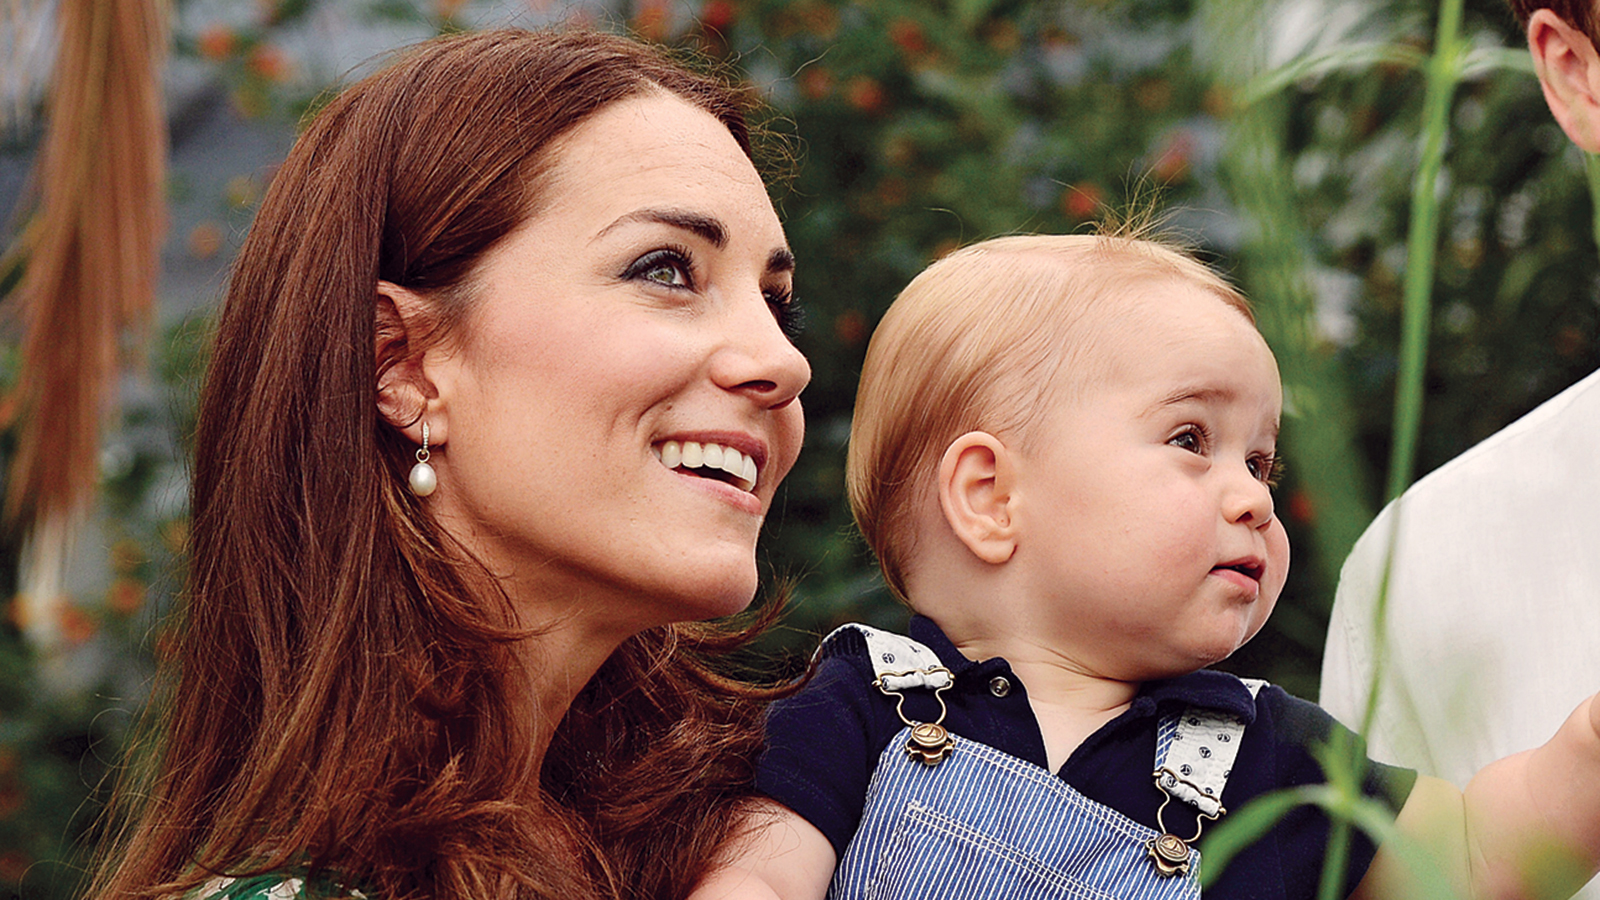 Prince George visits London's Natural History Museum with parents Catherine and Prince William ahead of his first birthday (John Stillwell/Getty Images)